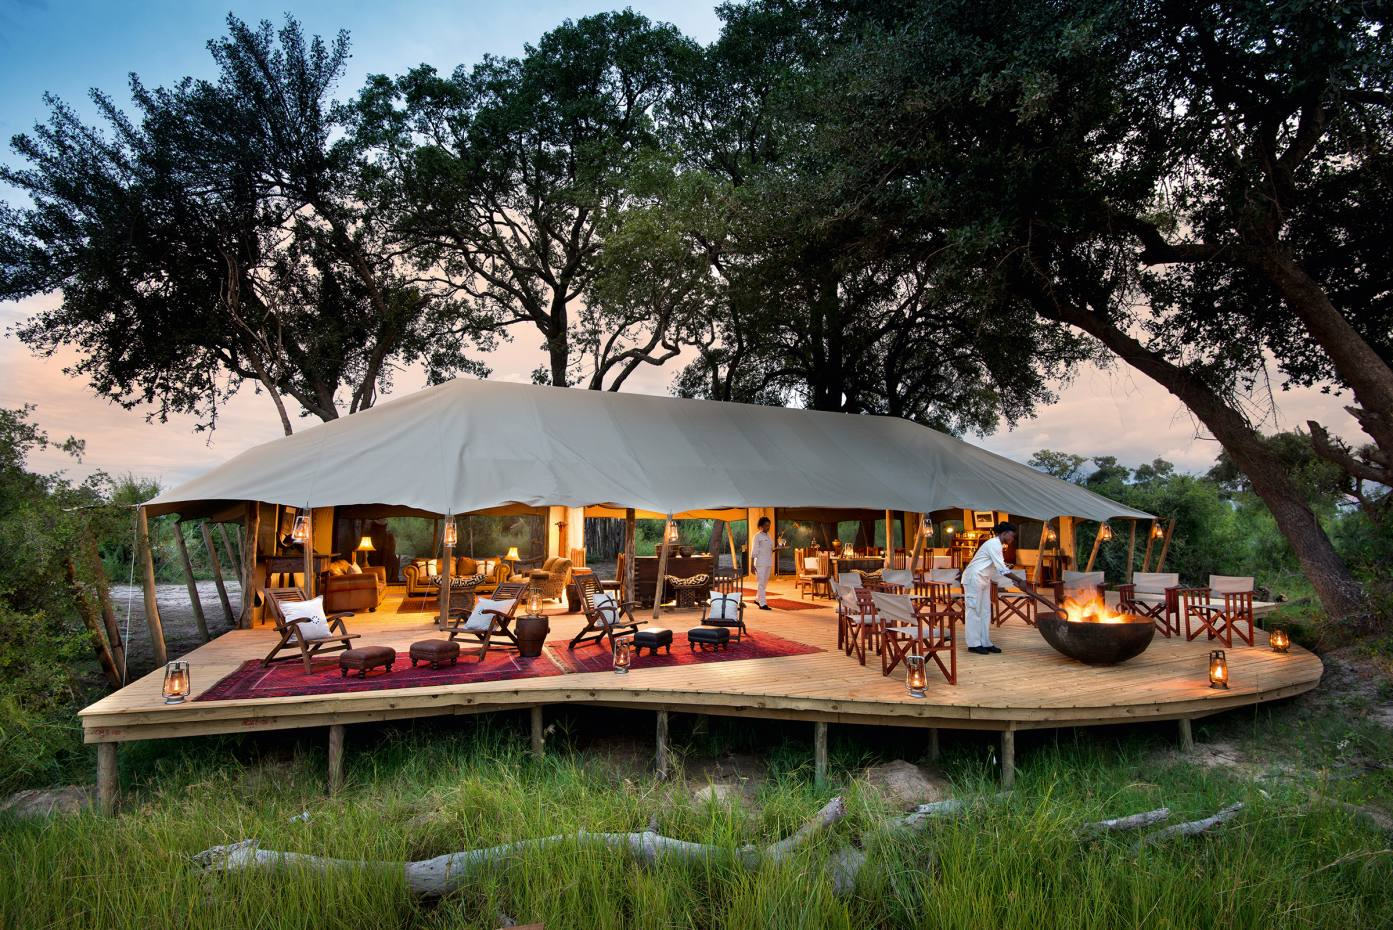 The Duba Expedition Camp in Botswana, part of the rebuilt Duba Plains Camp